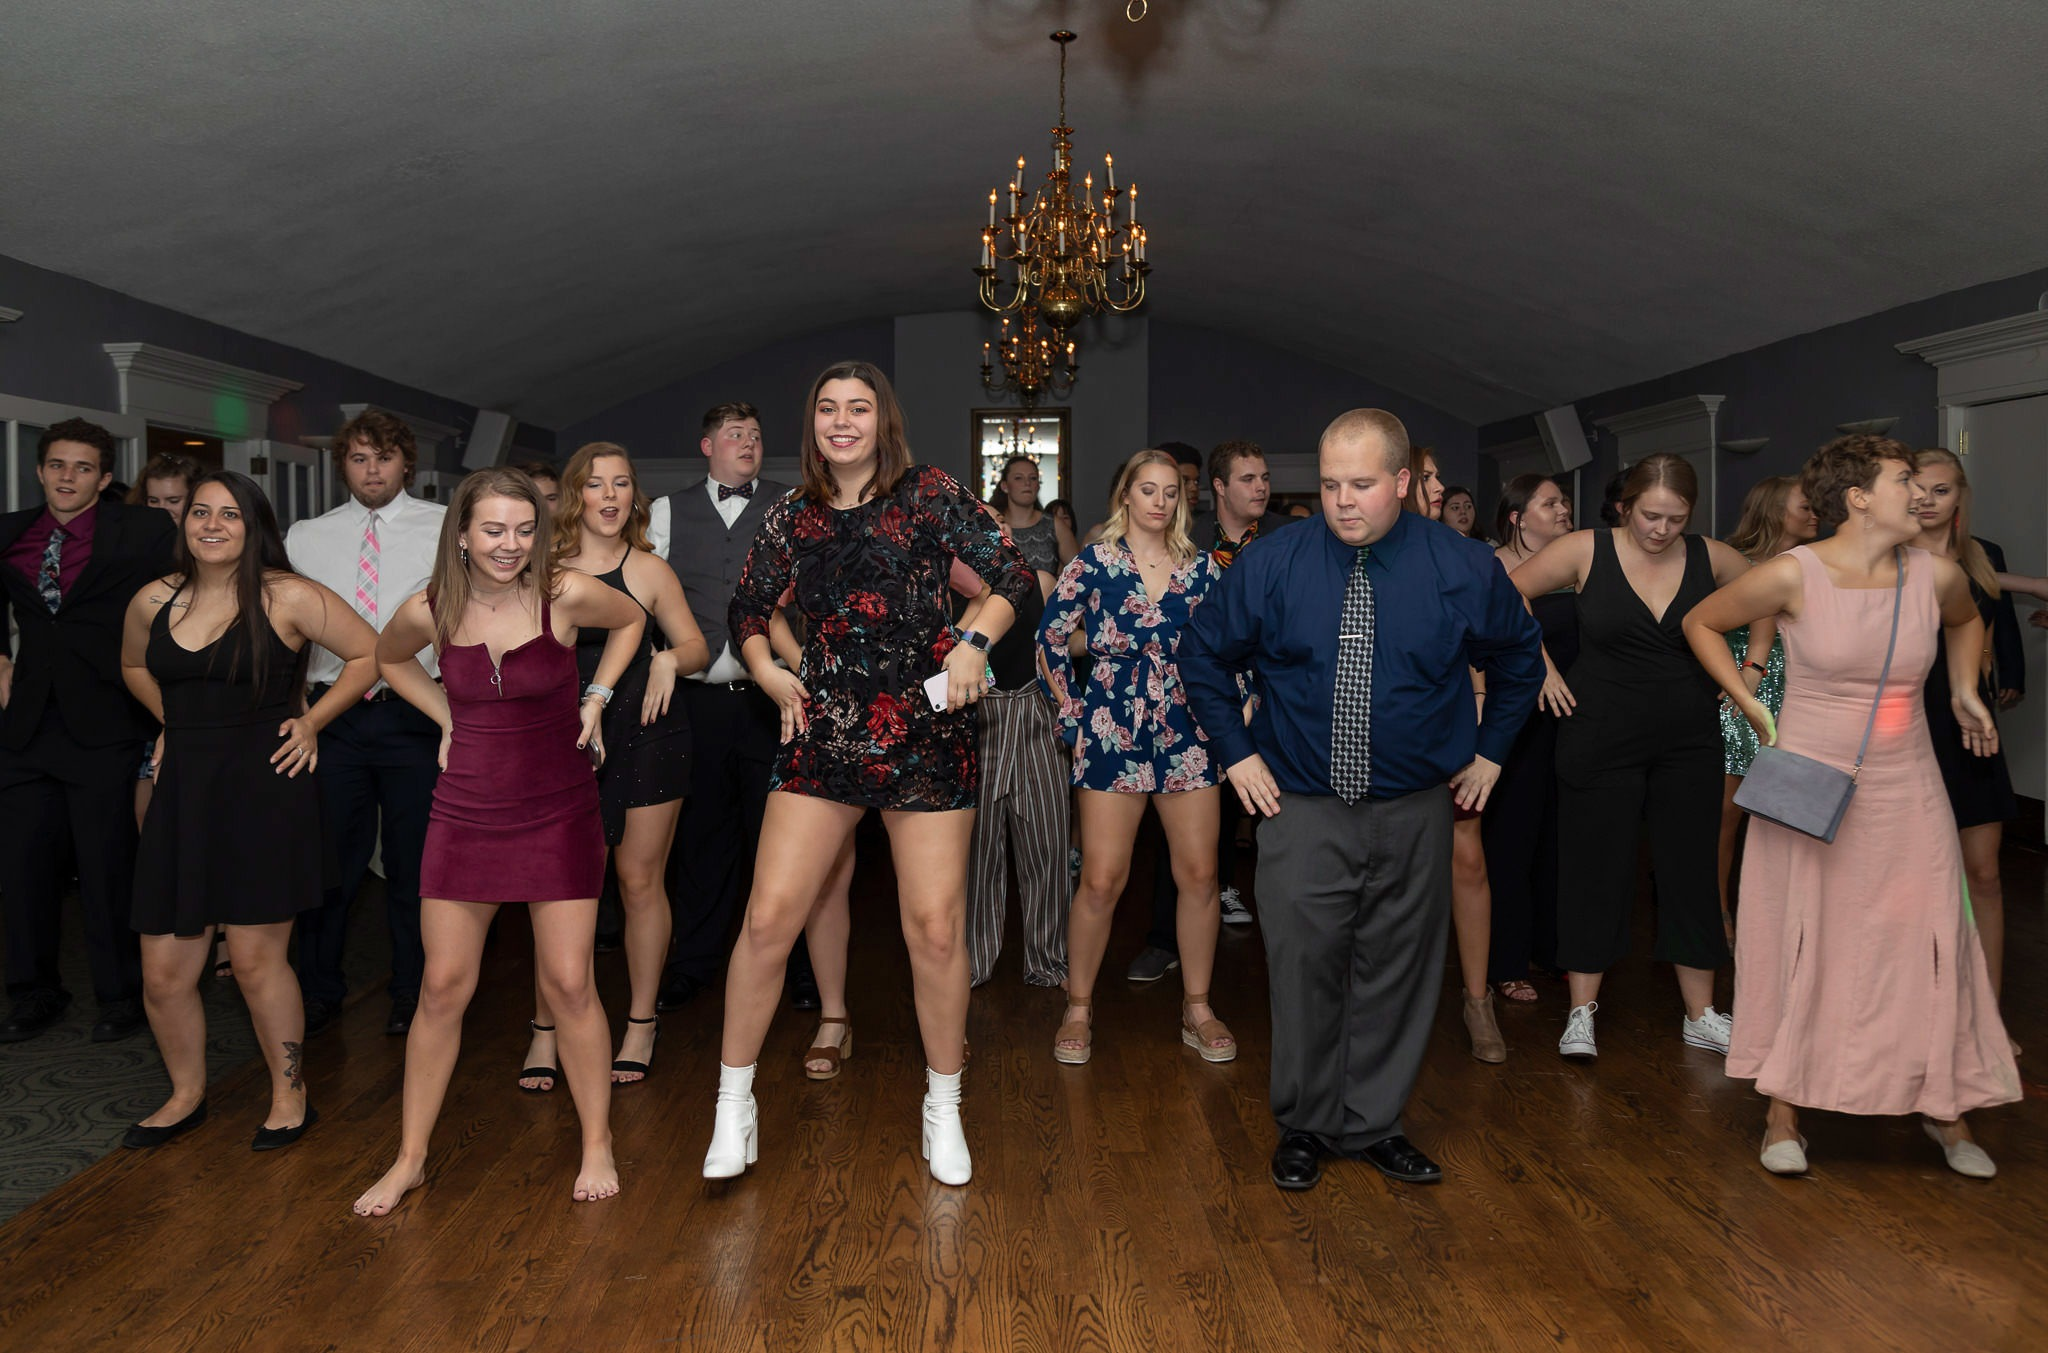 A photo of college students line dancing at the Fall formal.